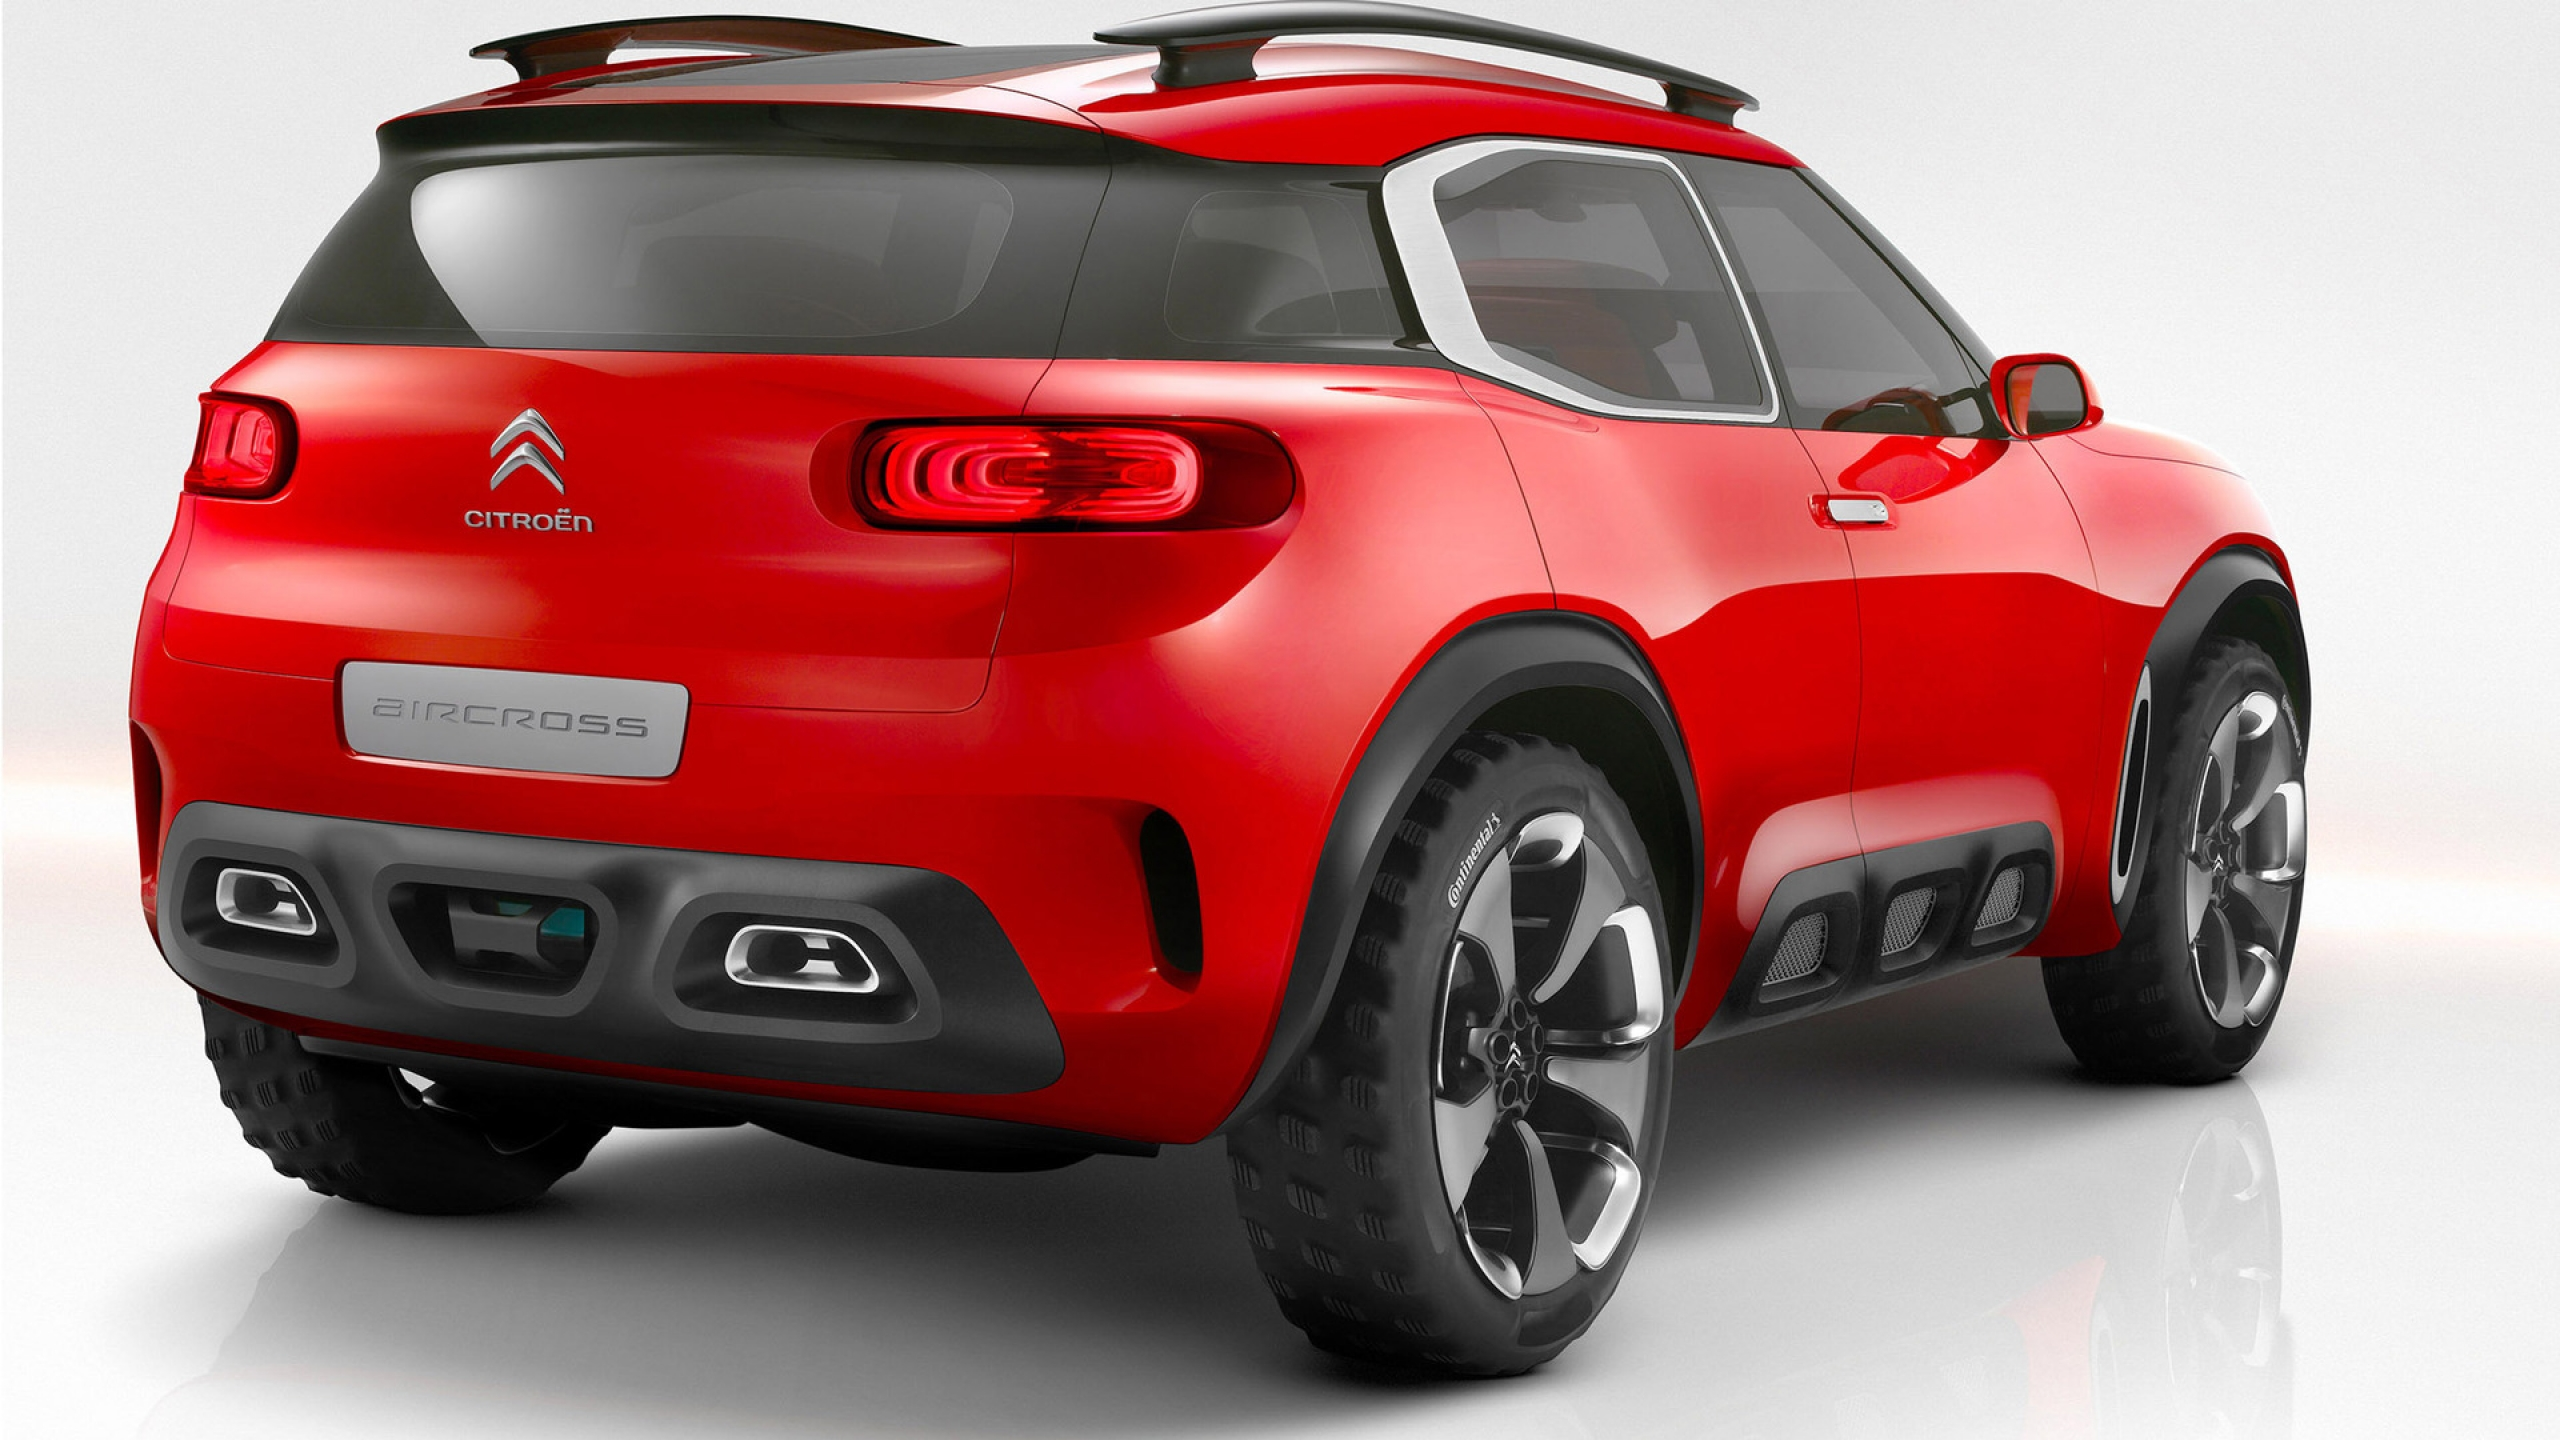 rear of citroen aircross concept 2560x1440 wallpaper 16215